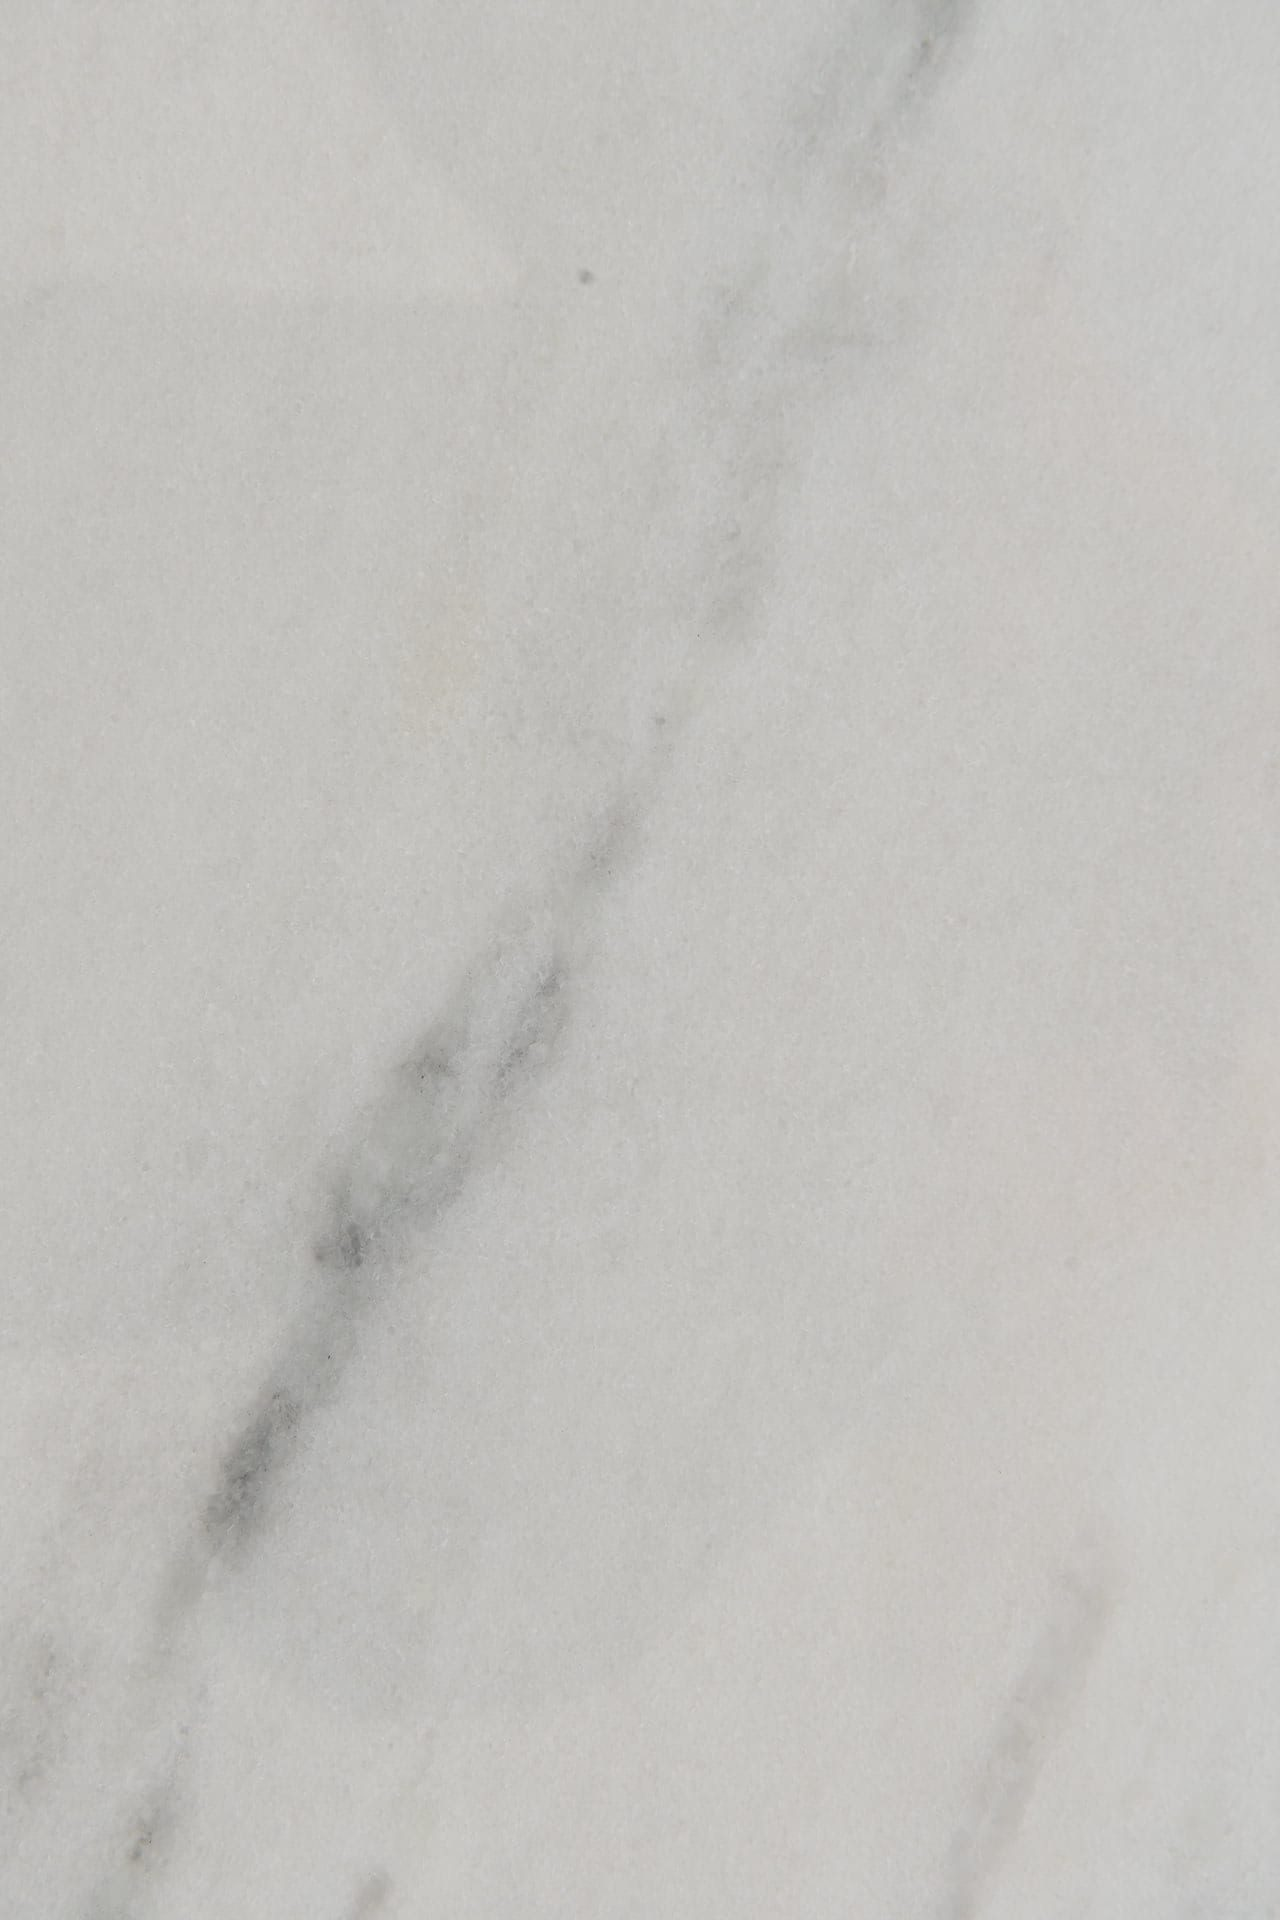 shadow storm cu countertop - by Magnolia Countertops. A Countertop fabricator of Granite Countertops, Marble Countertops, and Quartz Countertops in Cookeville and Crossville TN.